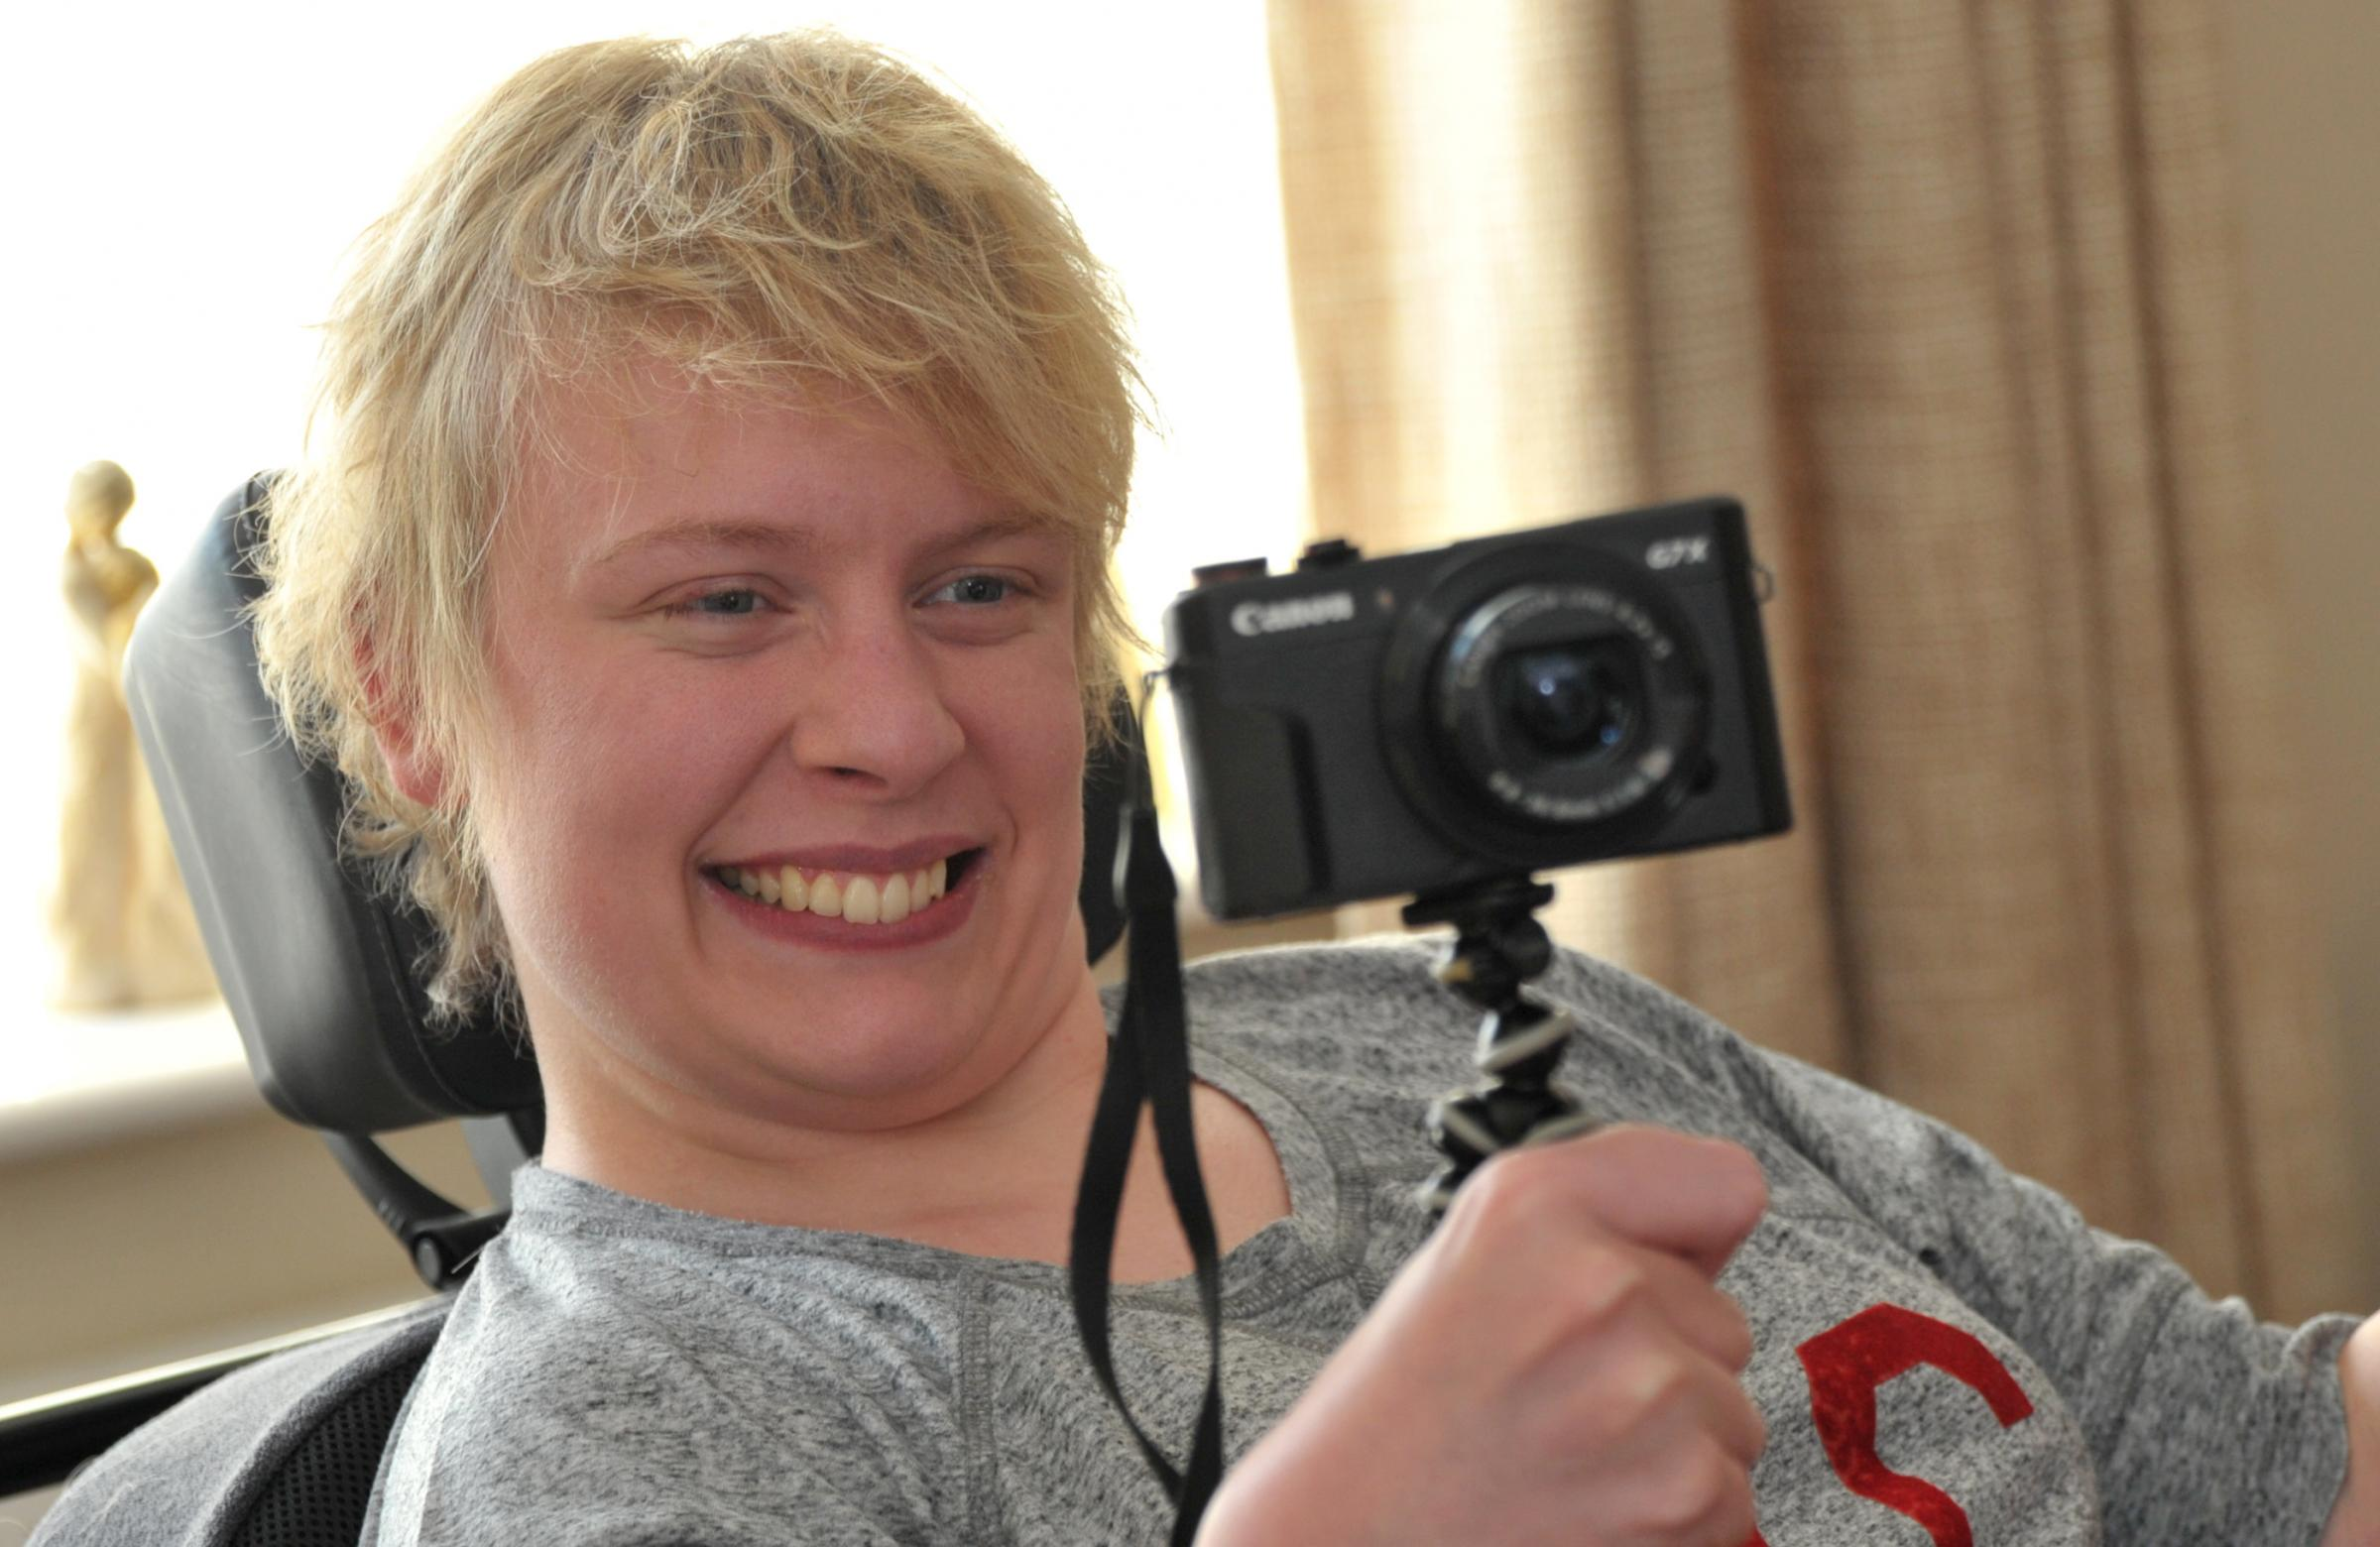 Swindon College graduate with cerebral palsy sets up The Life of Lauren blog